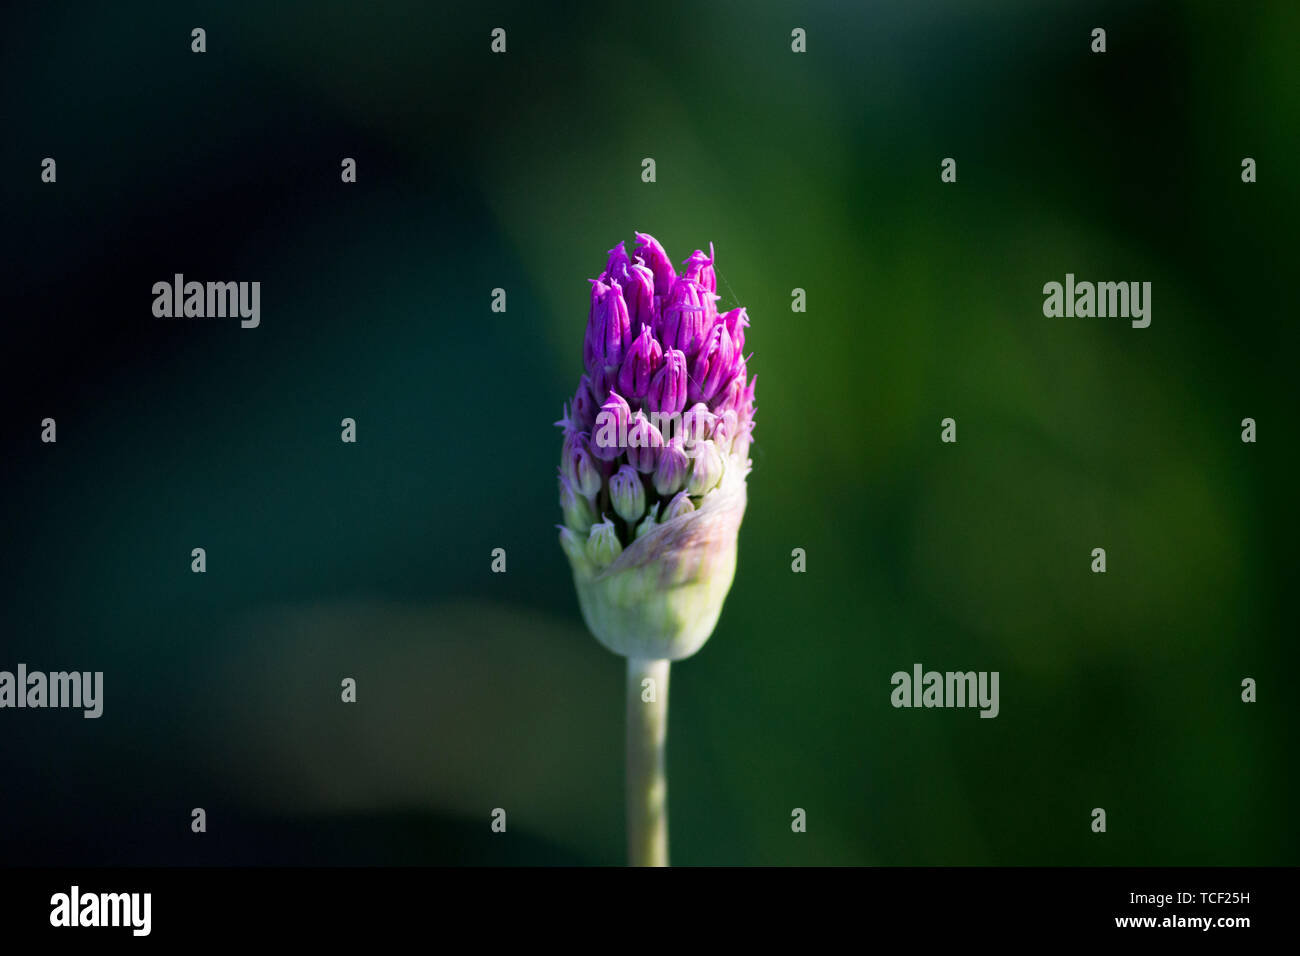 Purple flowers on a green background. Bud of decorative onion. Stock Photo